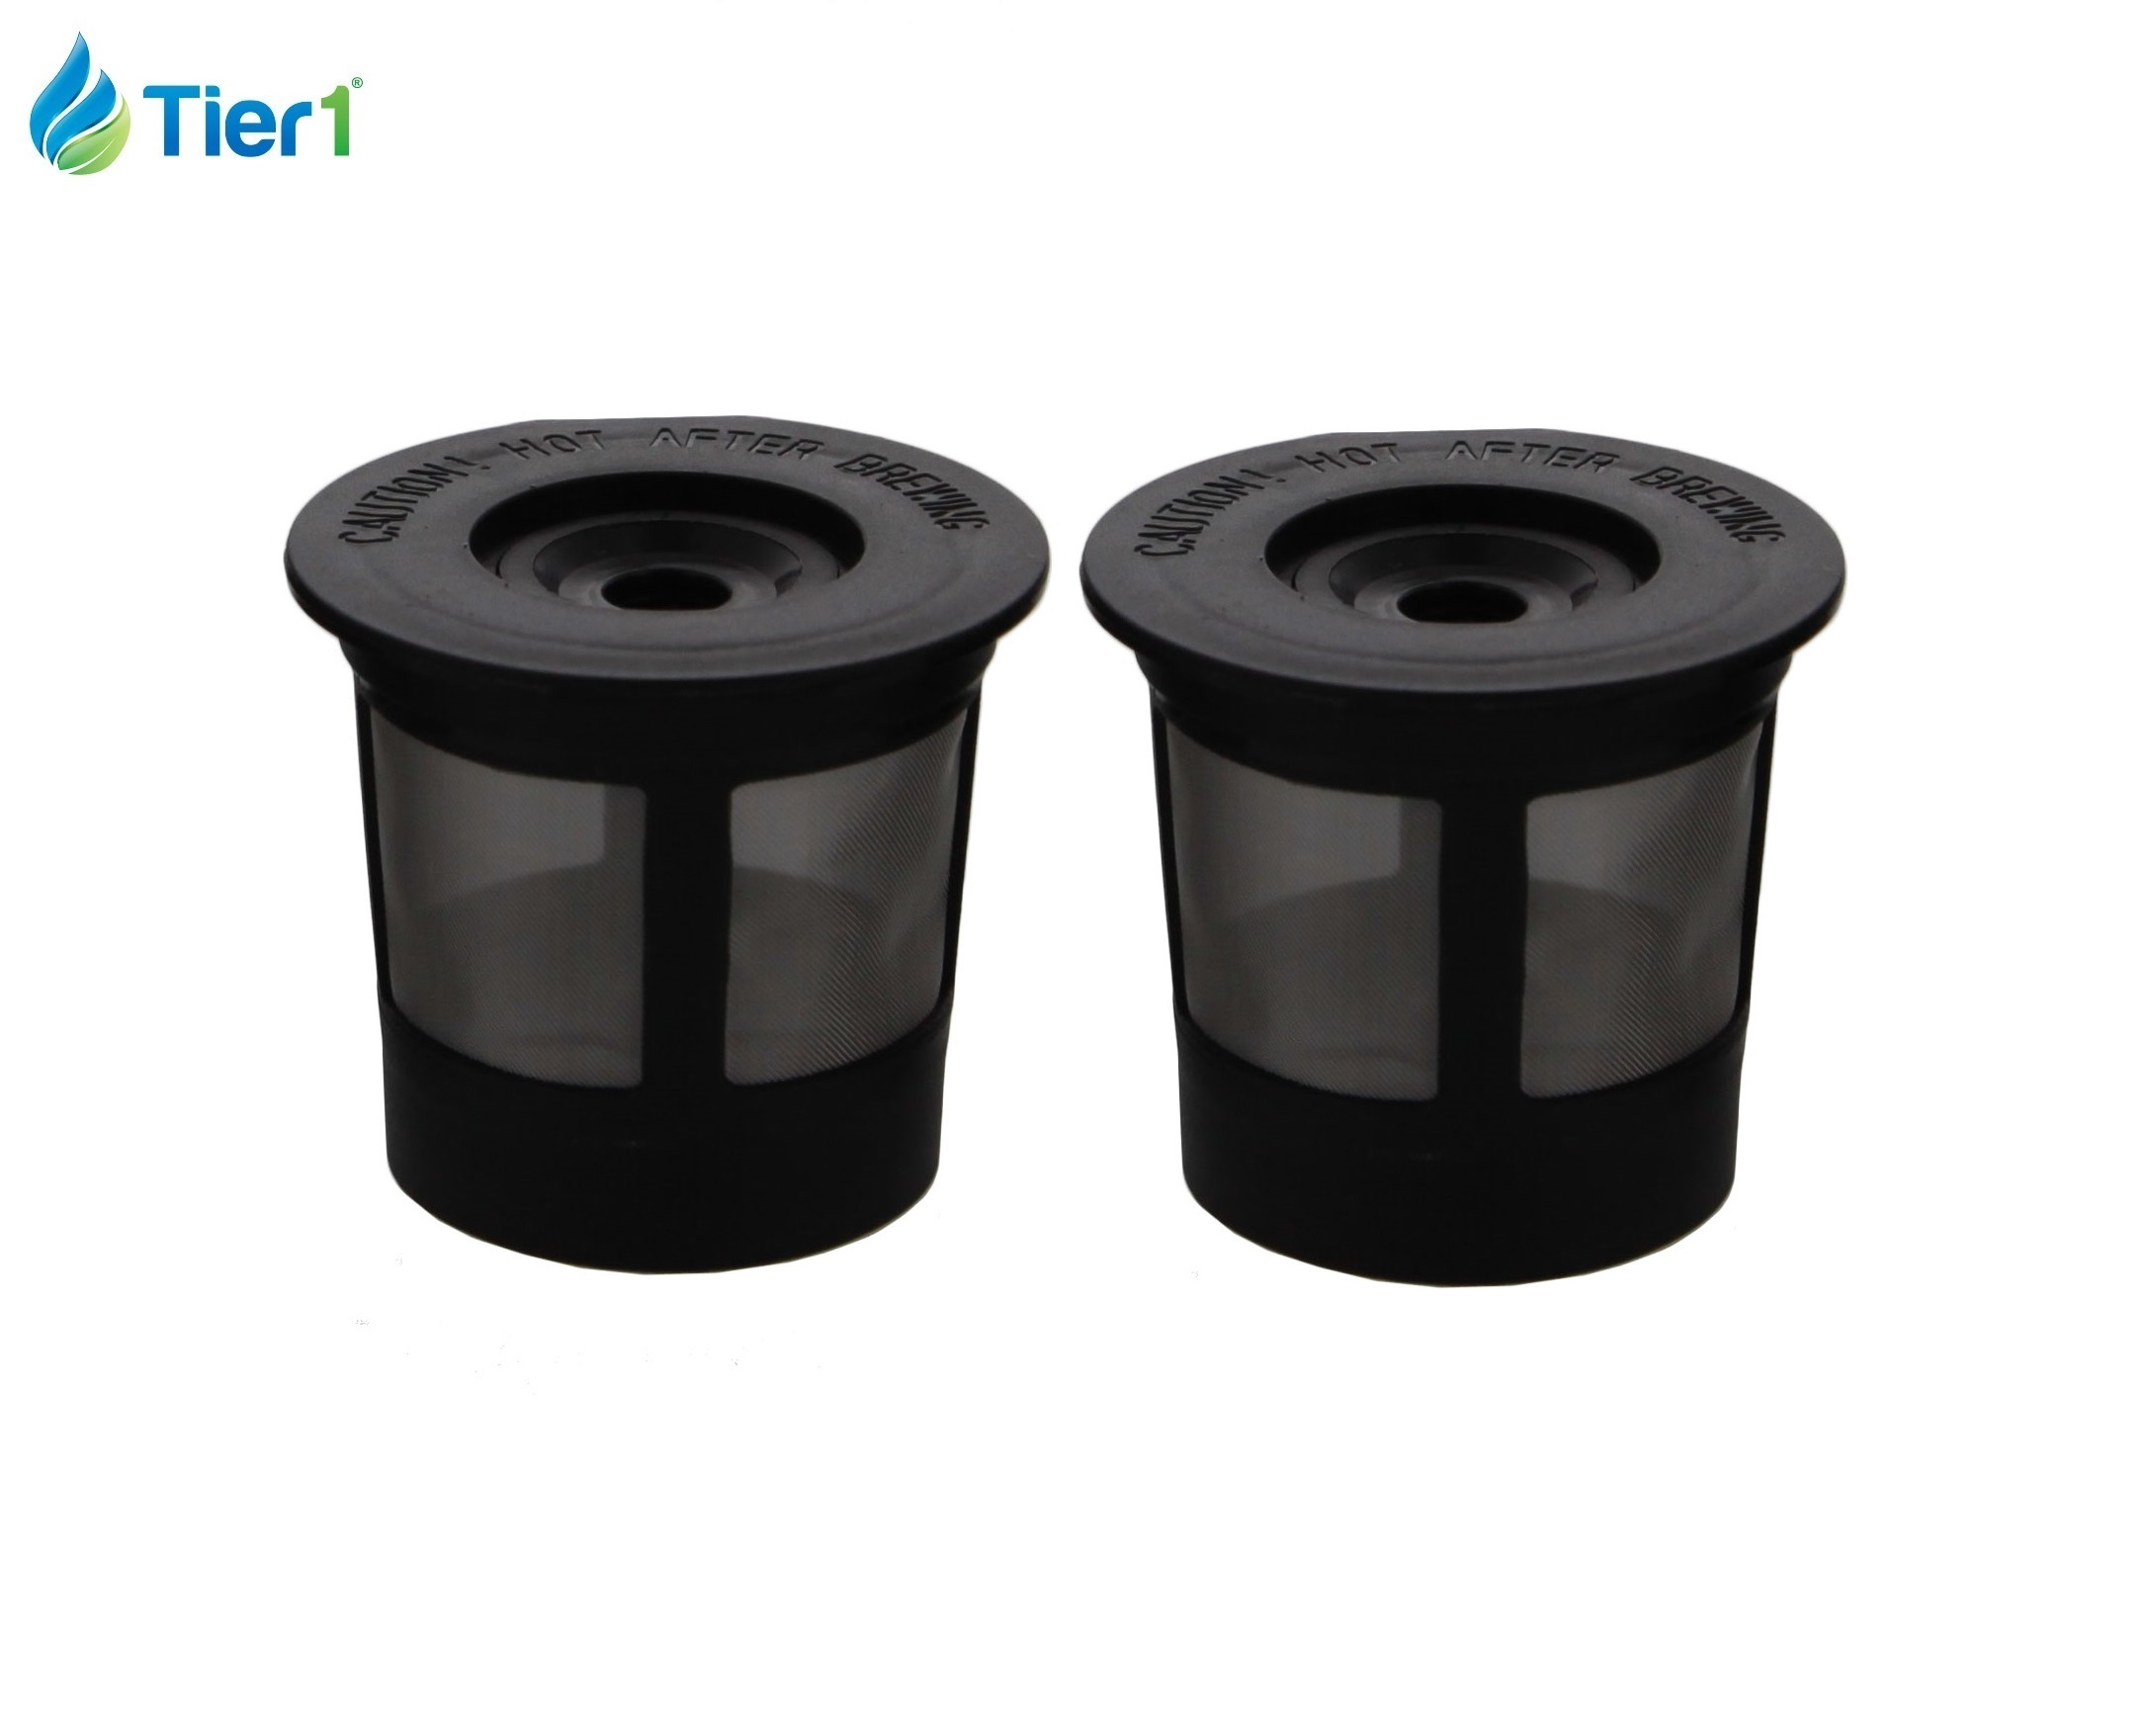 Keurig K Cup Holder Single Serve Comparable Coffee Maker Water Filter 2 Pack eBay